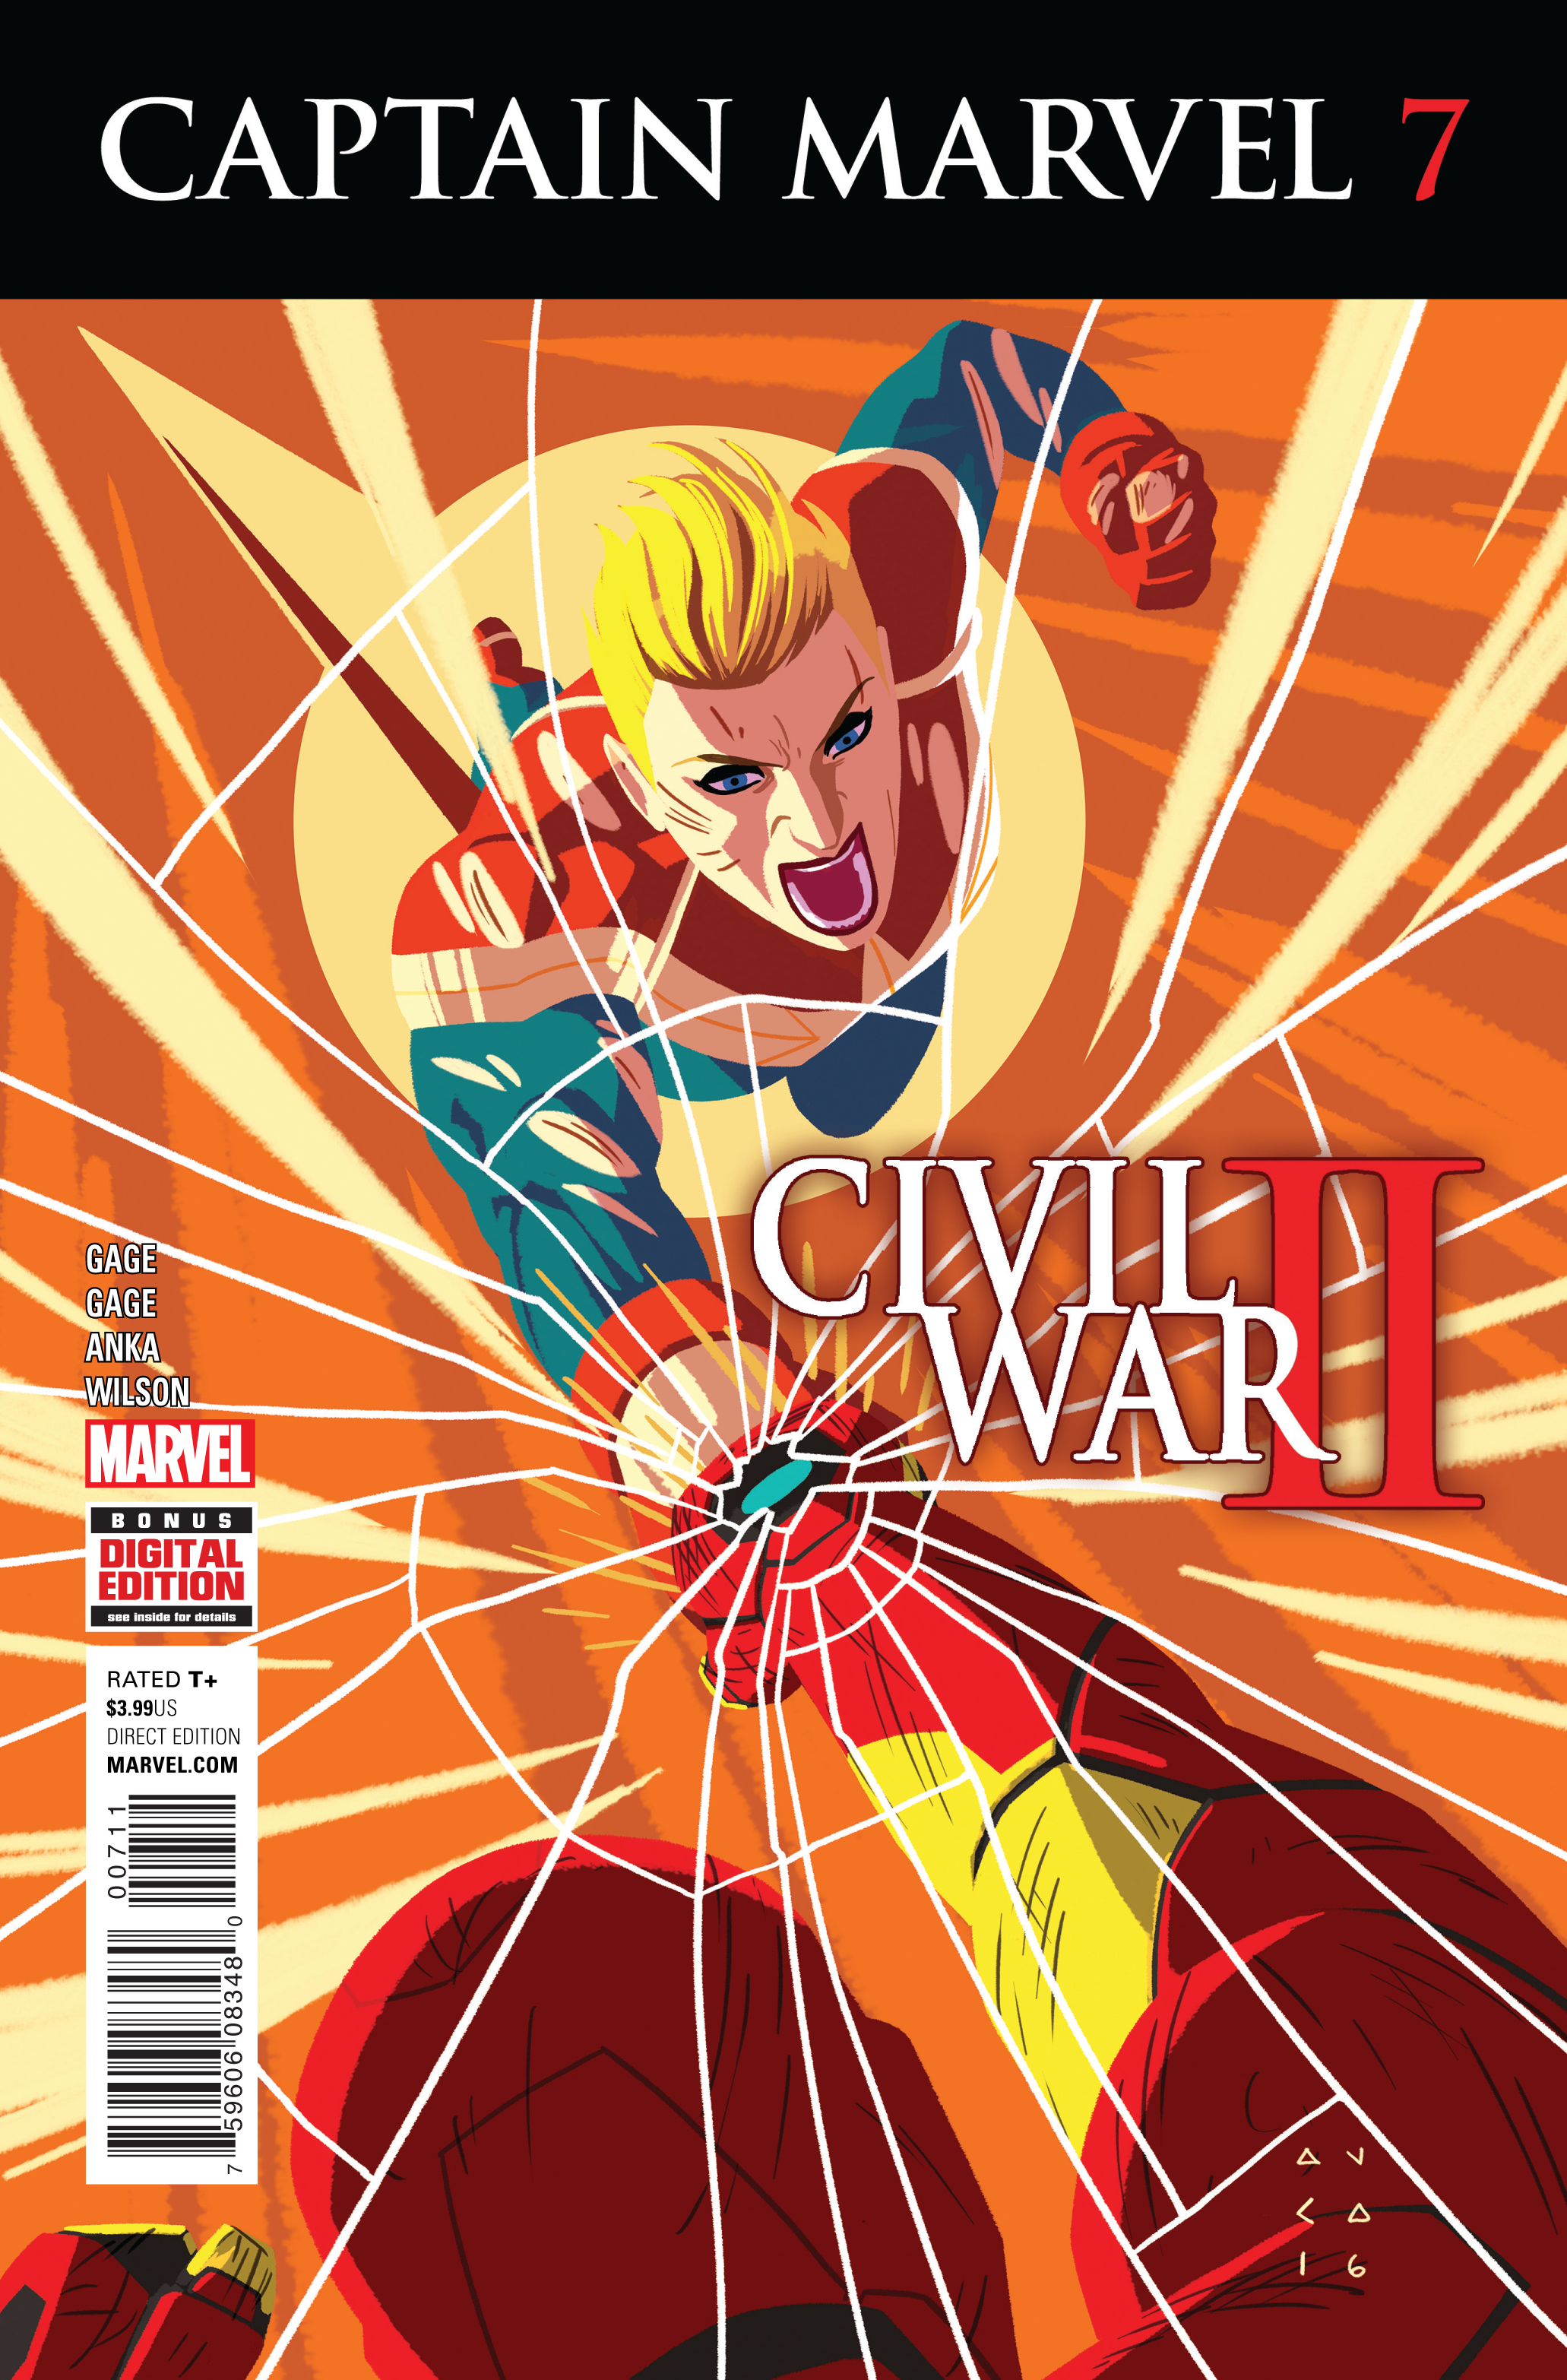 CAPTAIN MARVEL #7 CW2